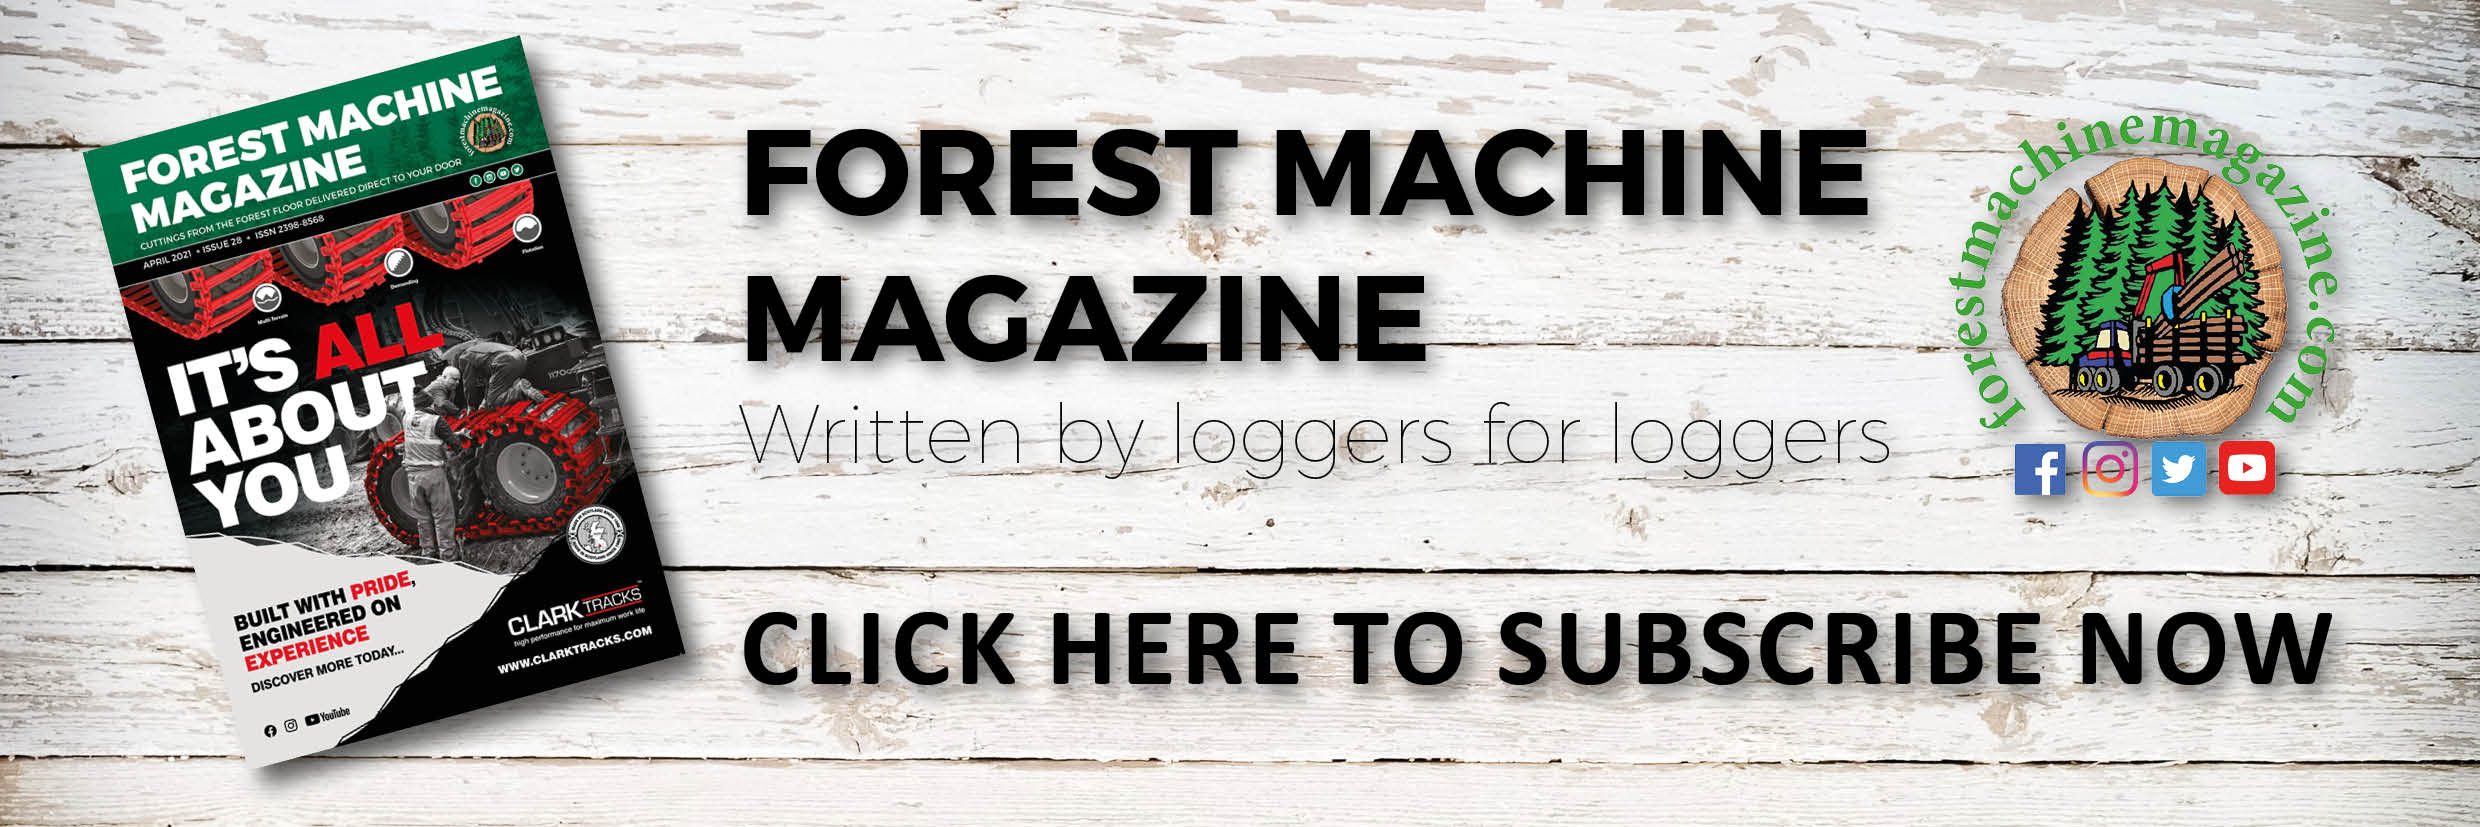 Forest Machine Magazine Banner